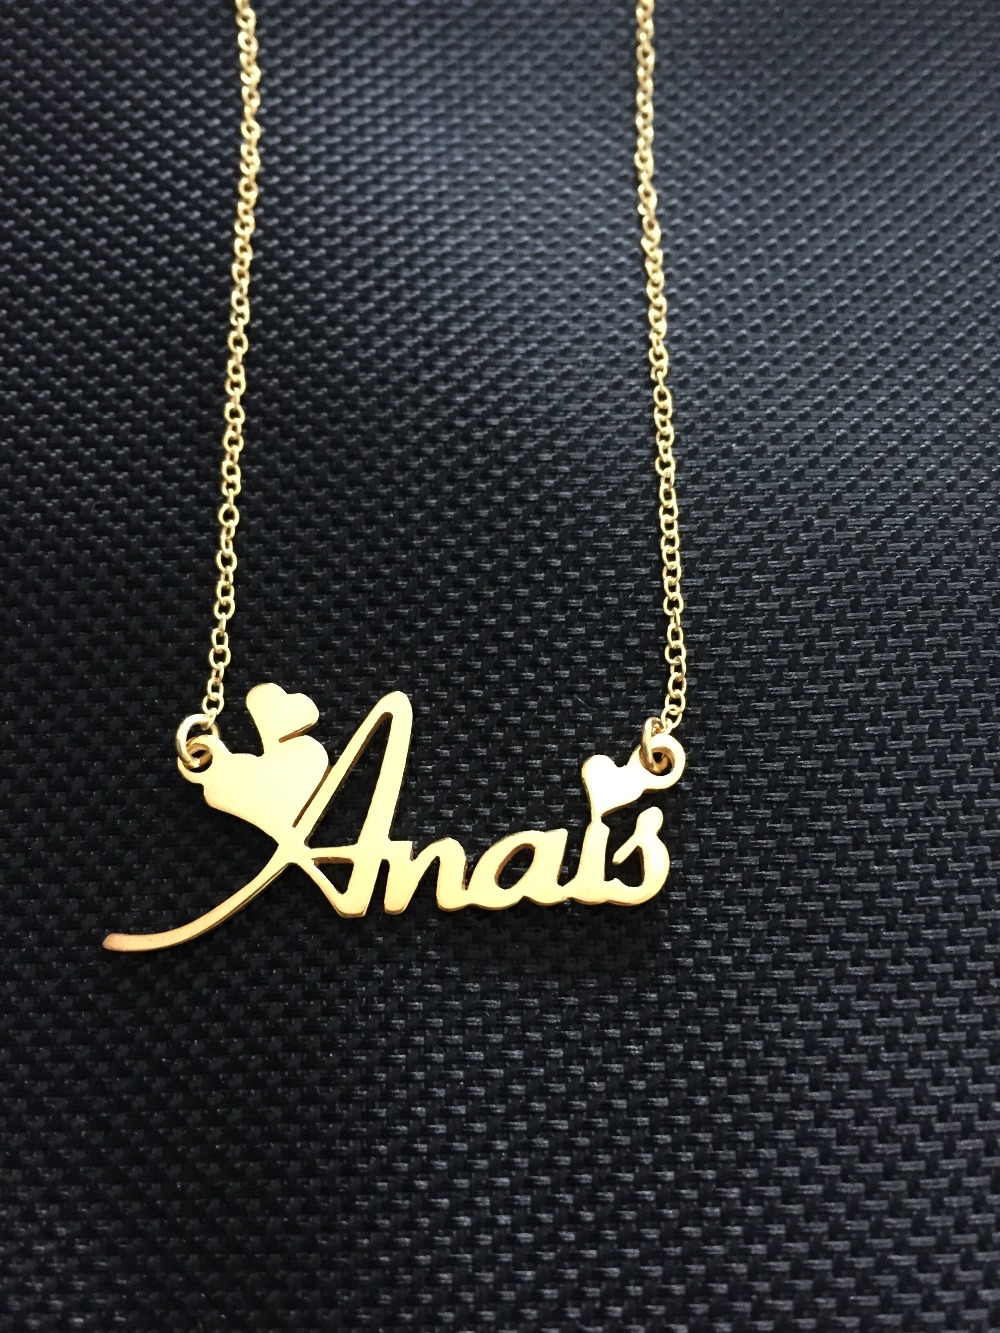 Personalized name jewelry most popular and best image jewelry personalized name necklace customized nameplate custom aloadofball Choice Image